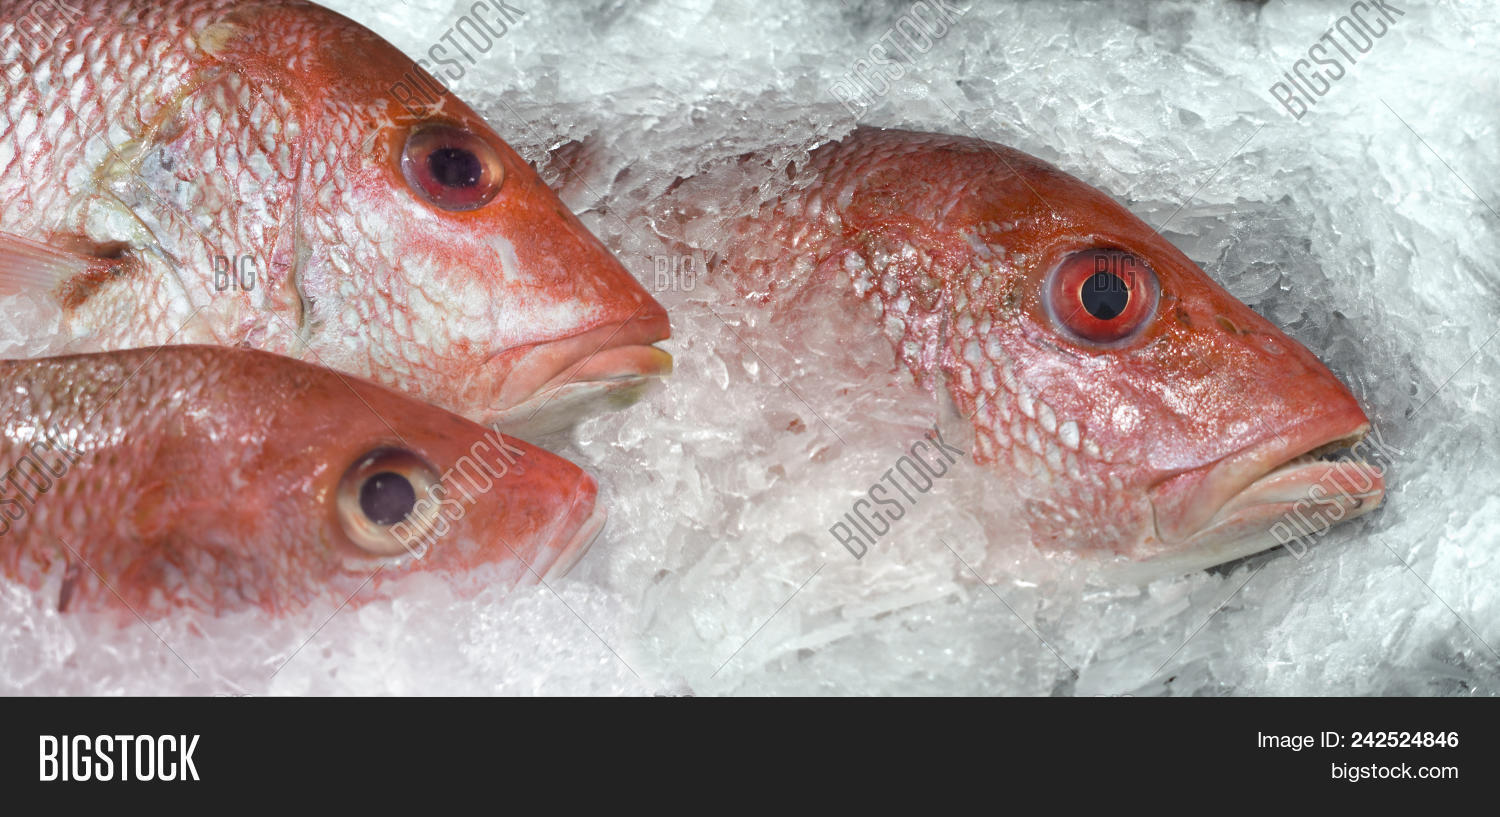 background,california,catch,color,delicious,eating,fish,food,fresh,freshness,horizontal,ice,iced,marine,market,nature,nobody,ocean,raw,red,sale,sea,seafood,shelf,snapper,tasty,uncooked,usa,whole